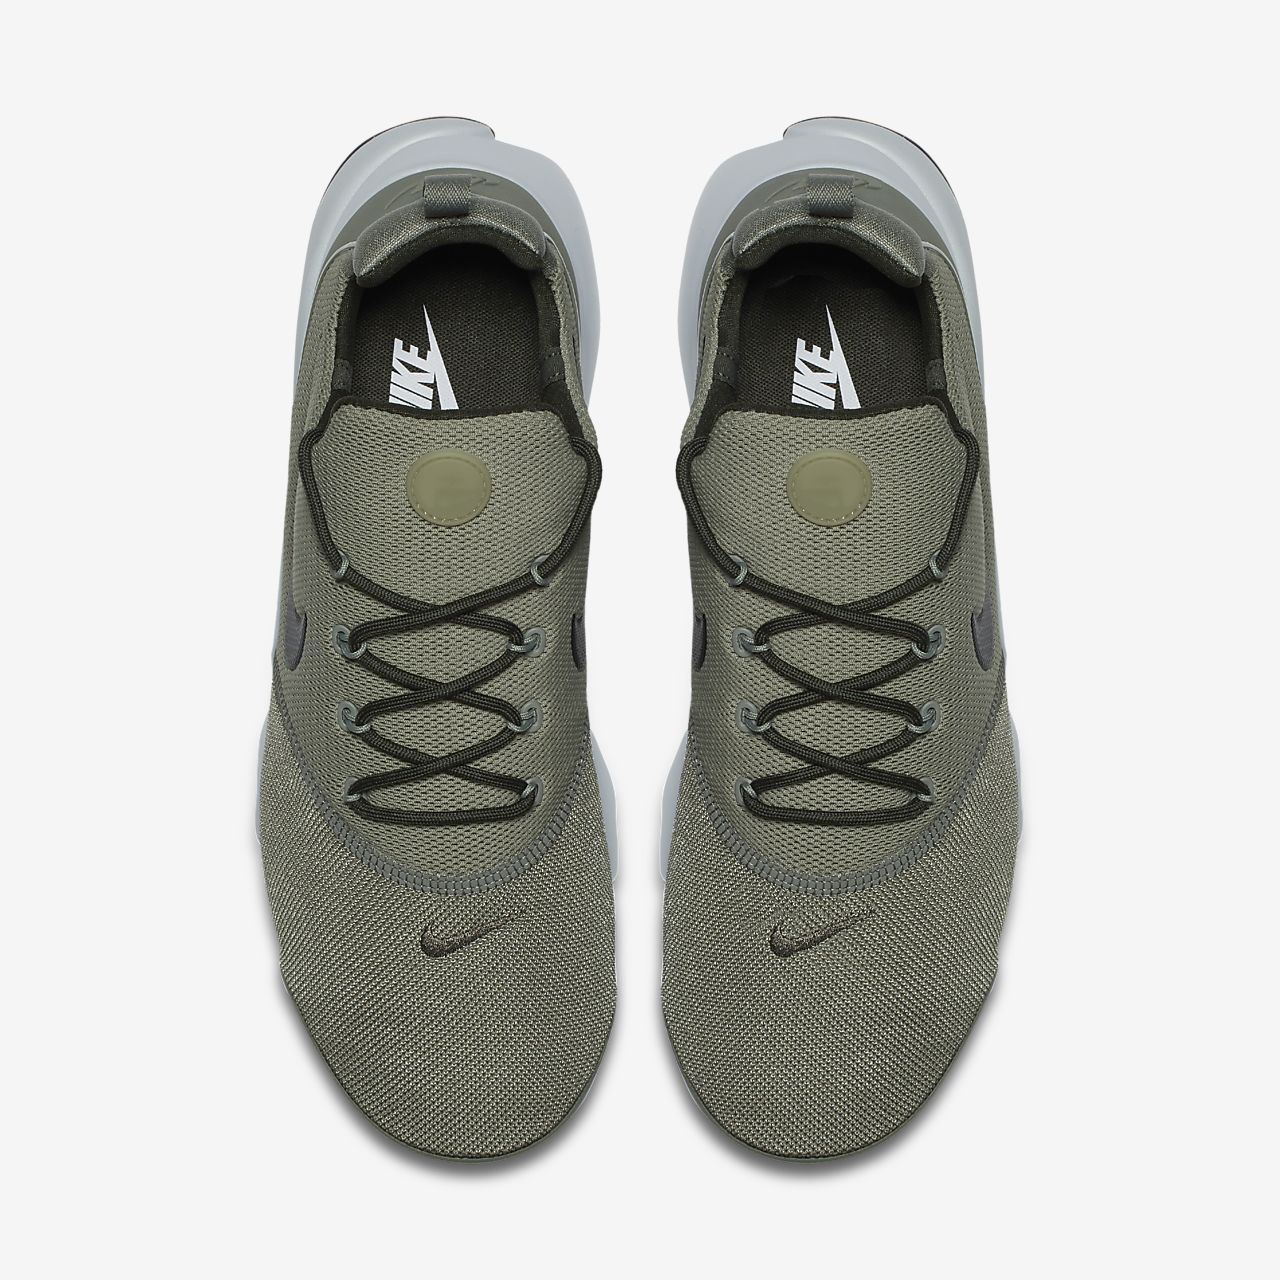 new concept 6f644 57c58 ... Nike Presto Fly Men s Shoe